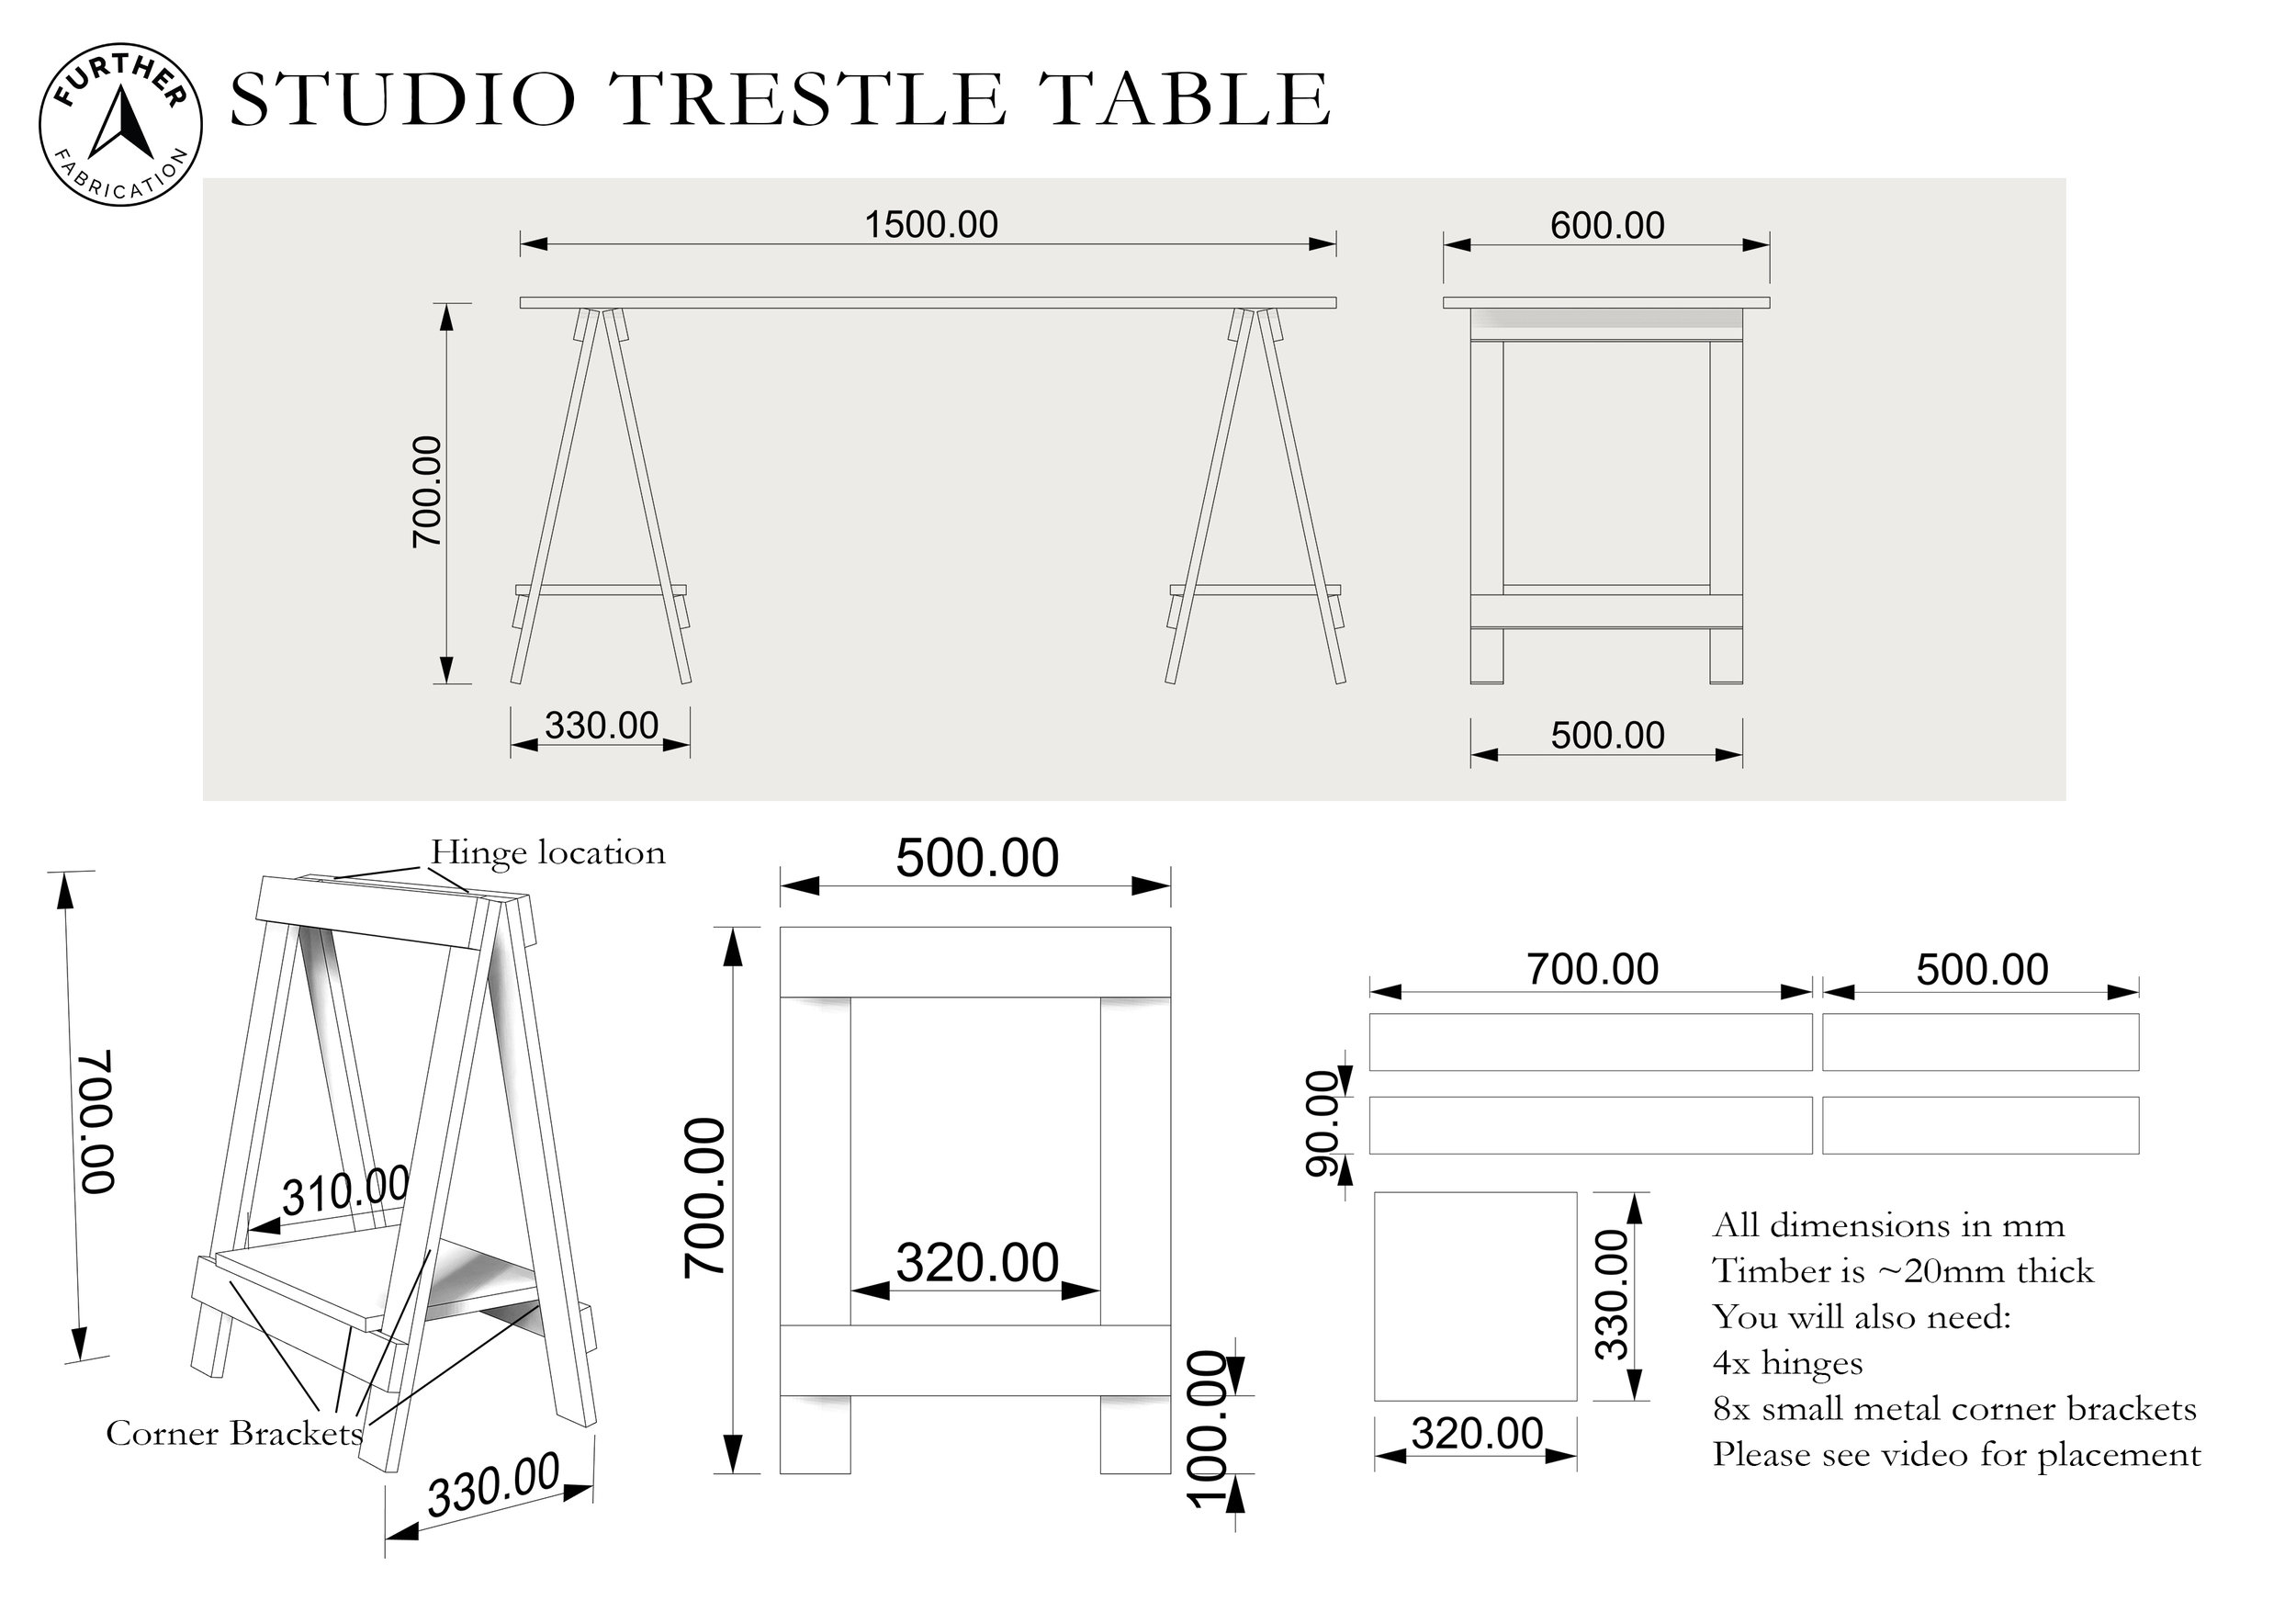 Studio Trestle Table Dimensions.jpg